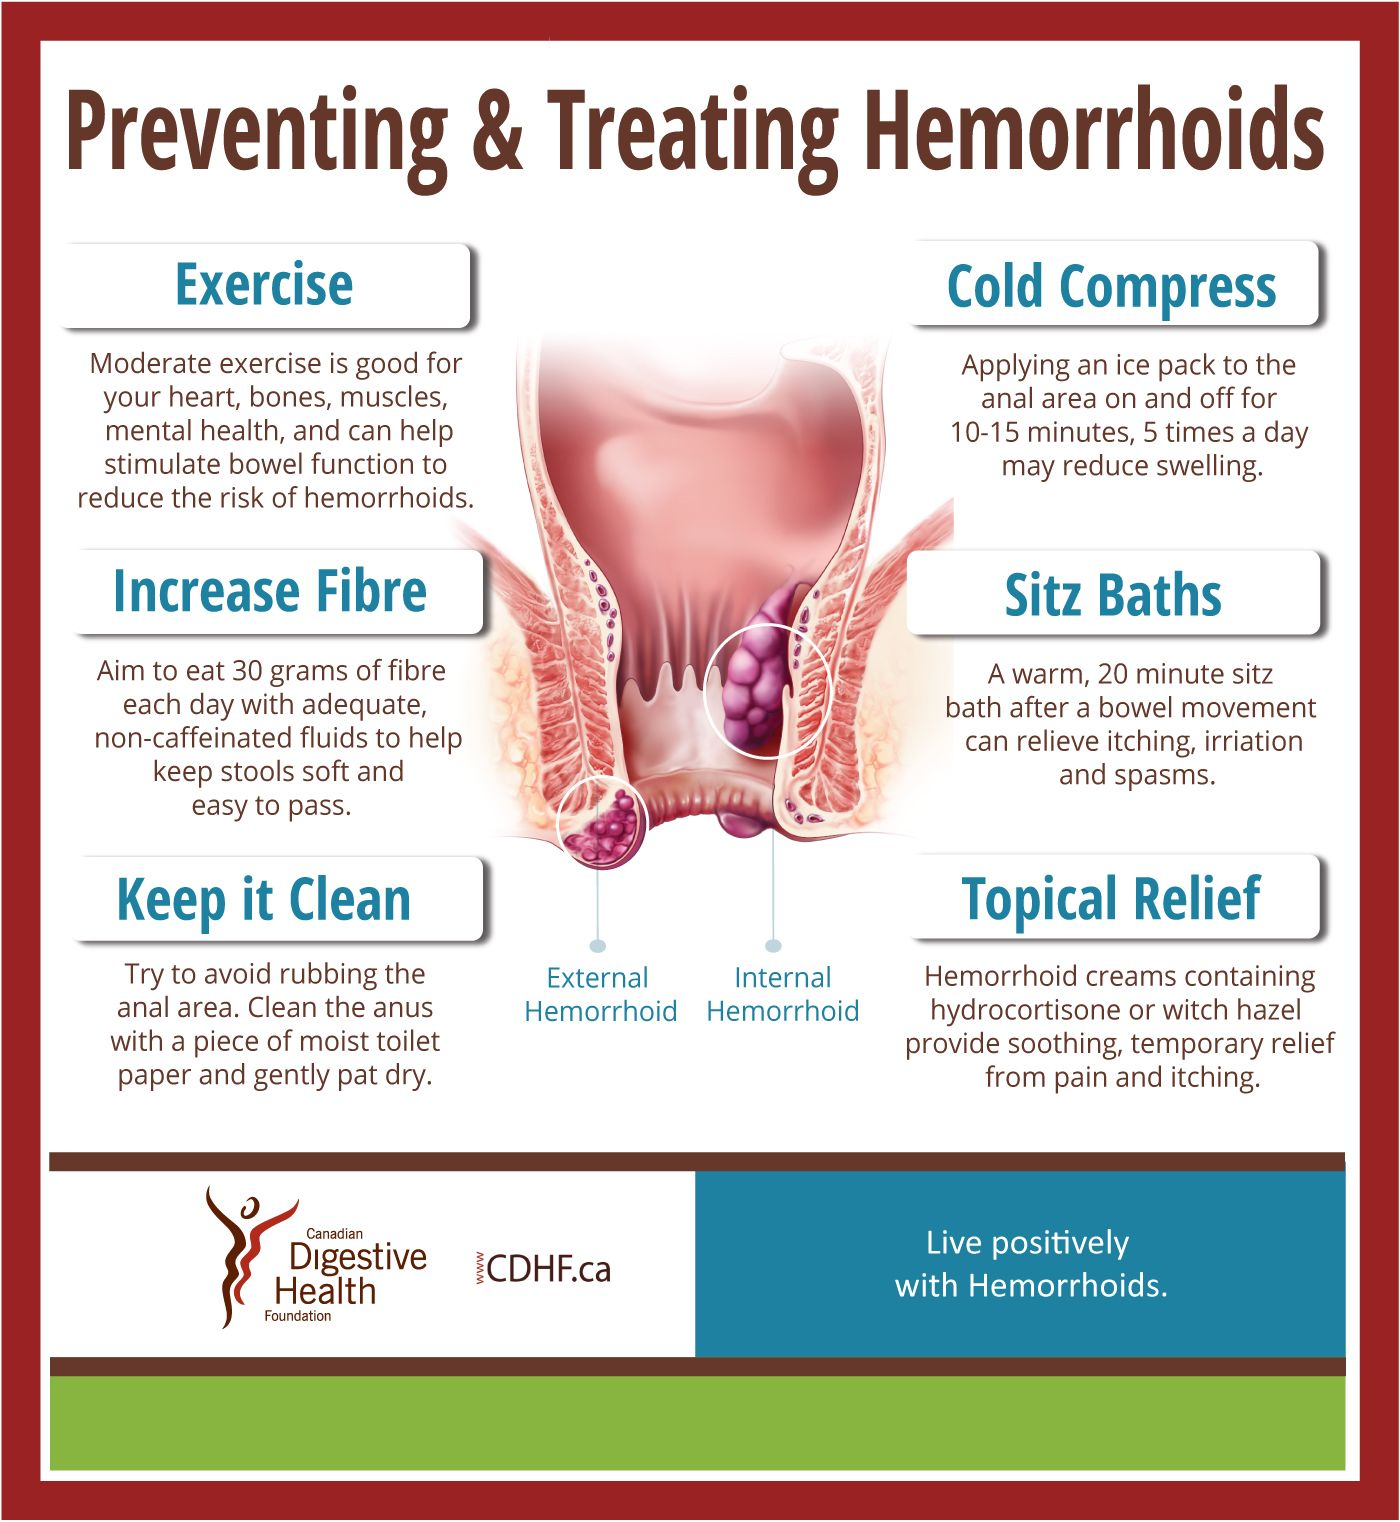 new hemorrhoids education guide hemorroids are one of the